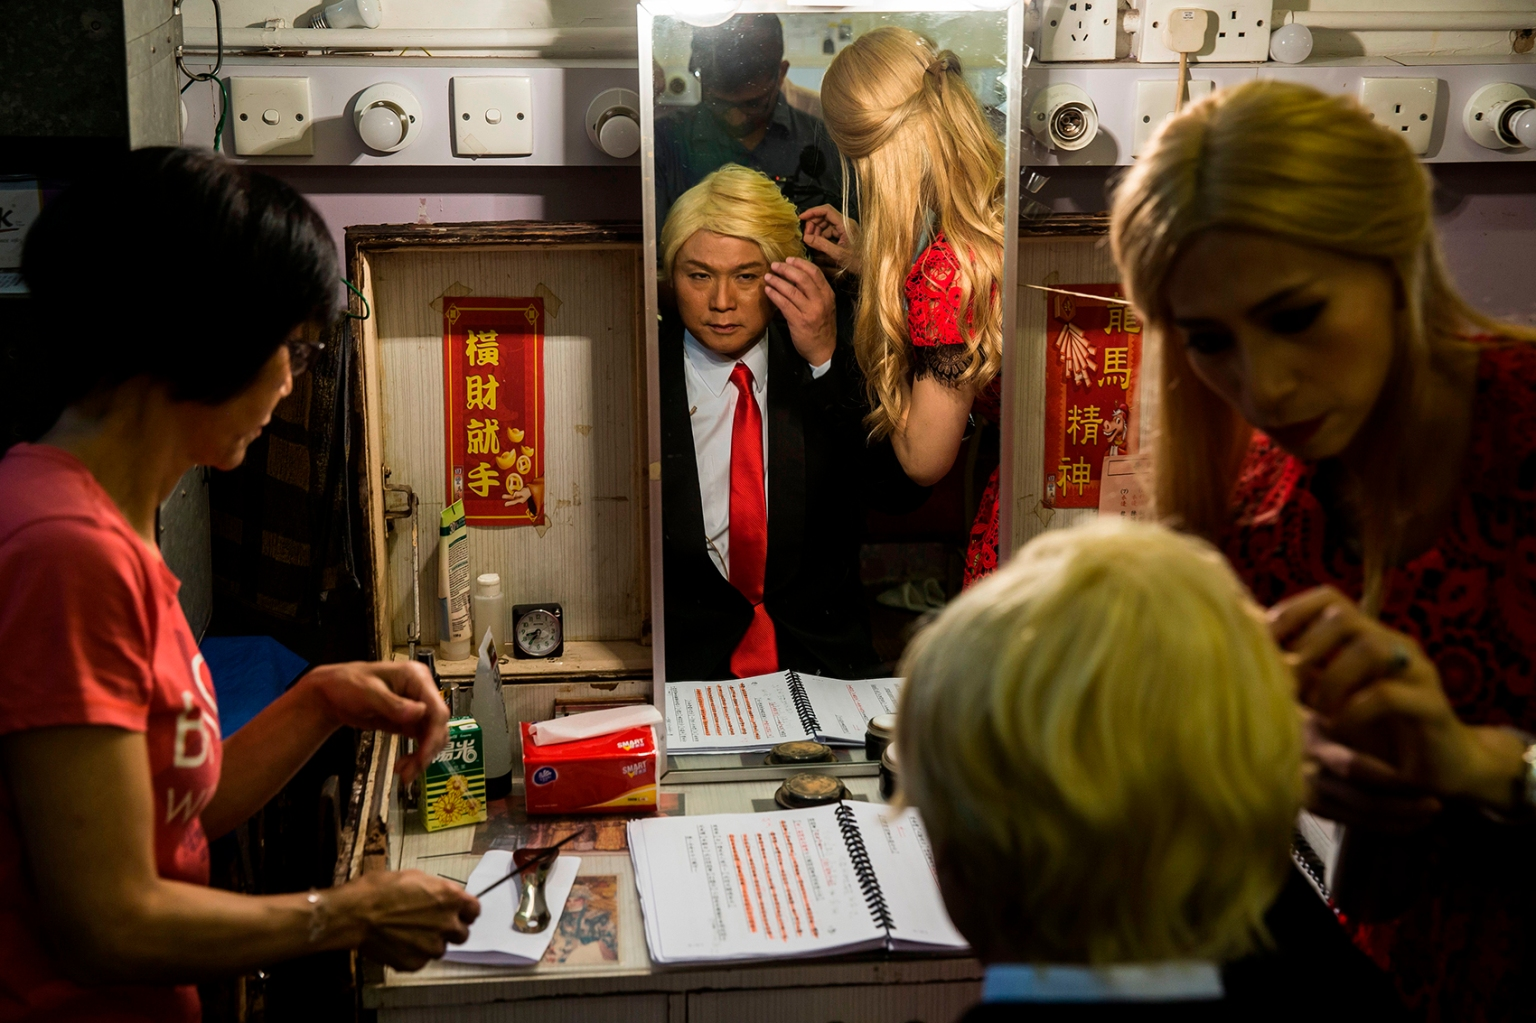 """Actress Man Chan, dressed as Ivanka Trump, helps actor Loong Koon-tin dress as U.S. President Donald Trump backstage during a rehearsal of a Cantonese opera called """"Trump on Show"""" in Hong Kong on April 11. ISAAC LAWRENCE/AFP/Getty Images"""